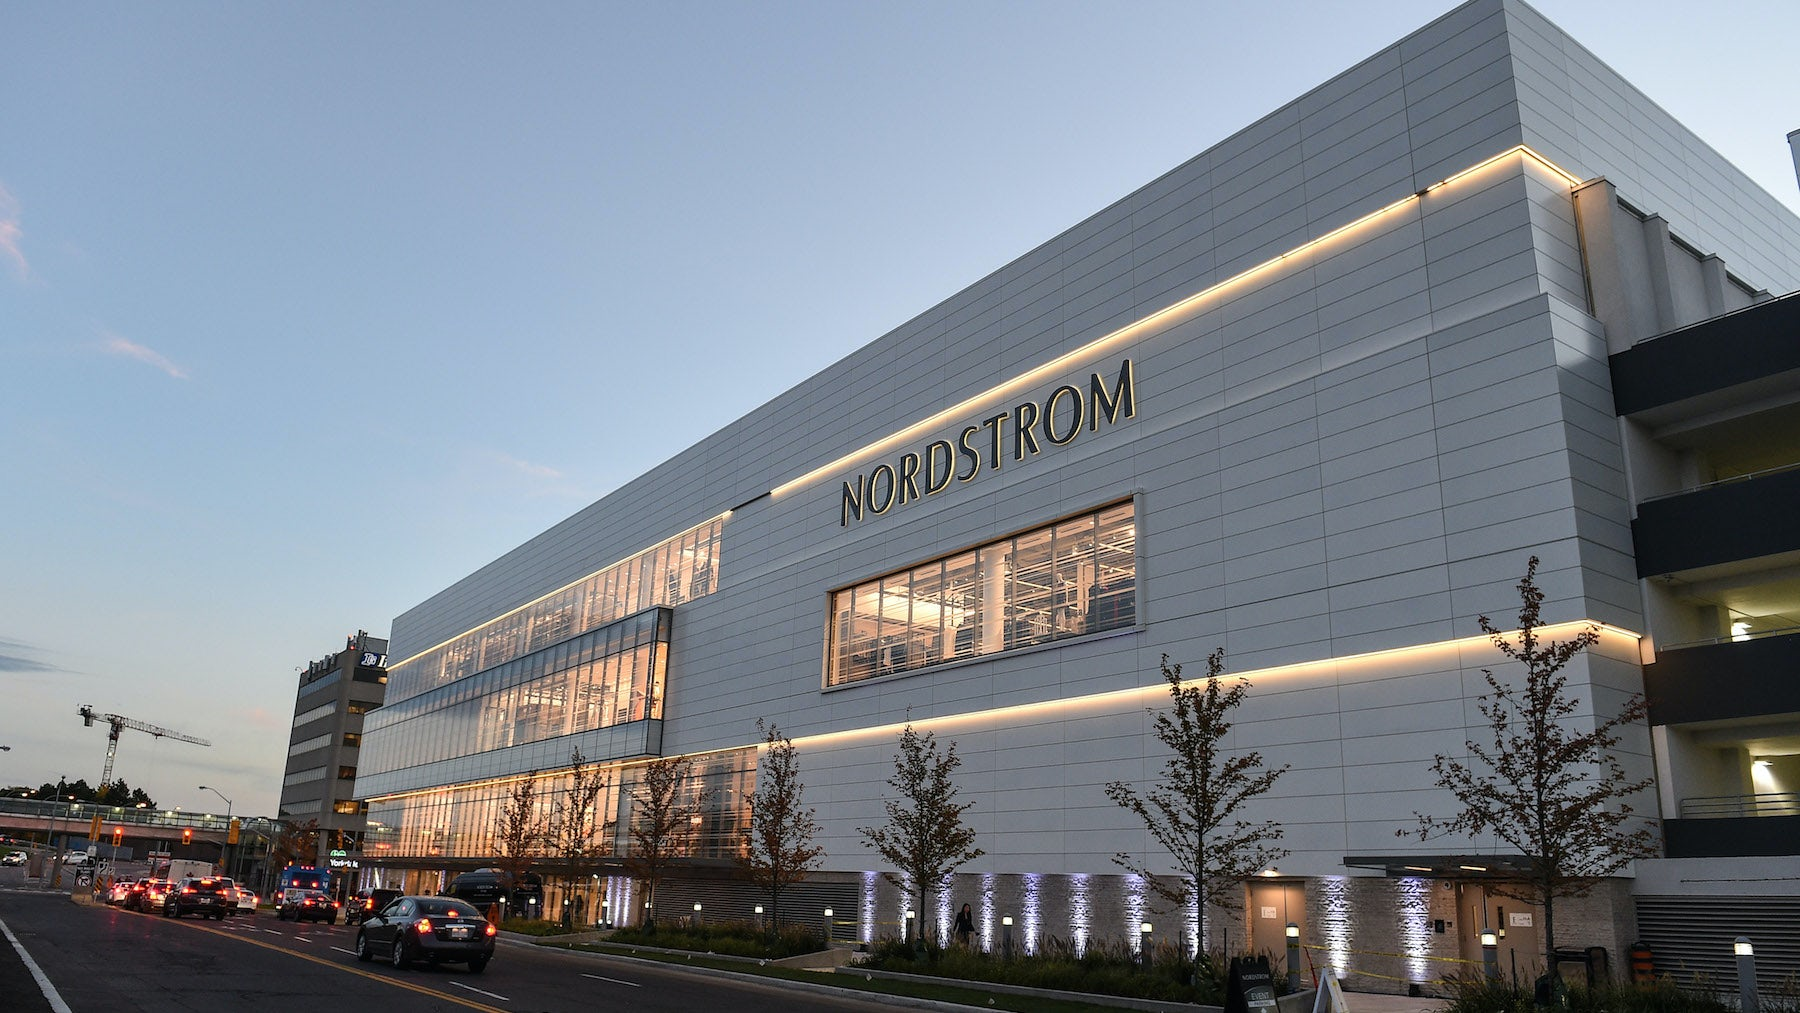 Nordstrom's new store in Yorkdale, Toronto | Source: Courtesy